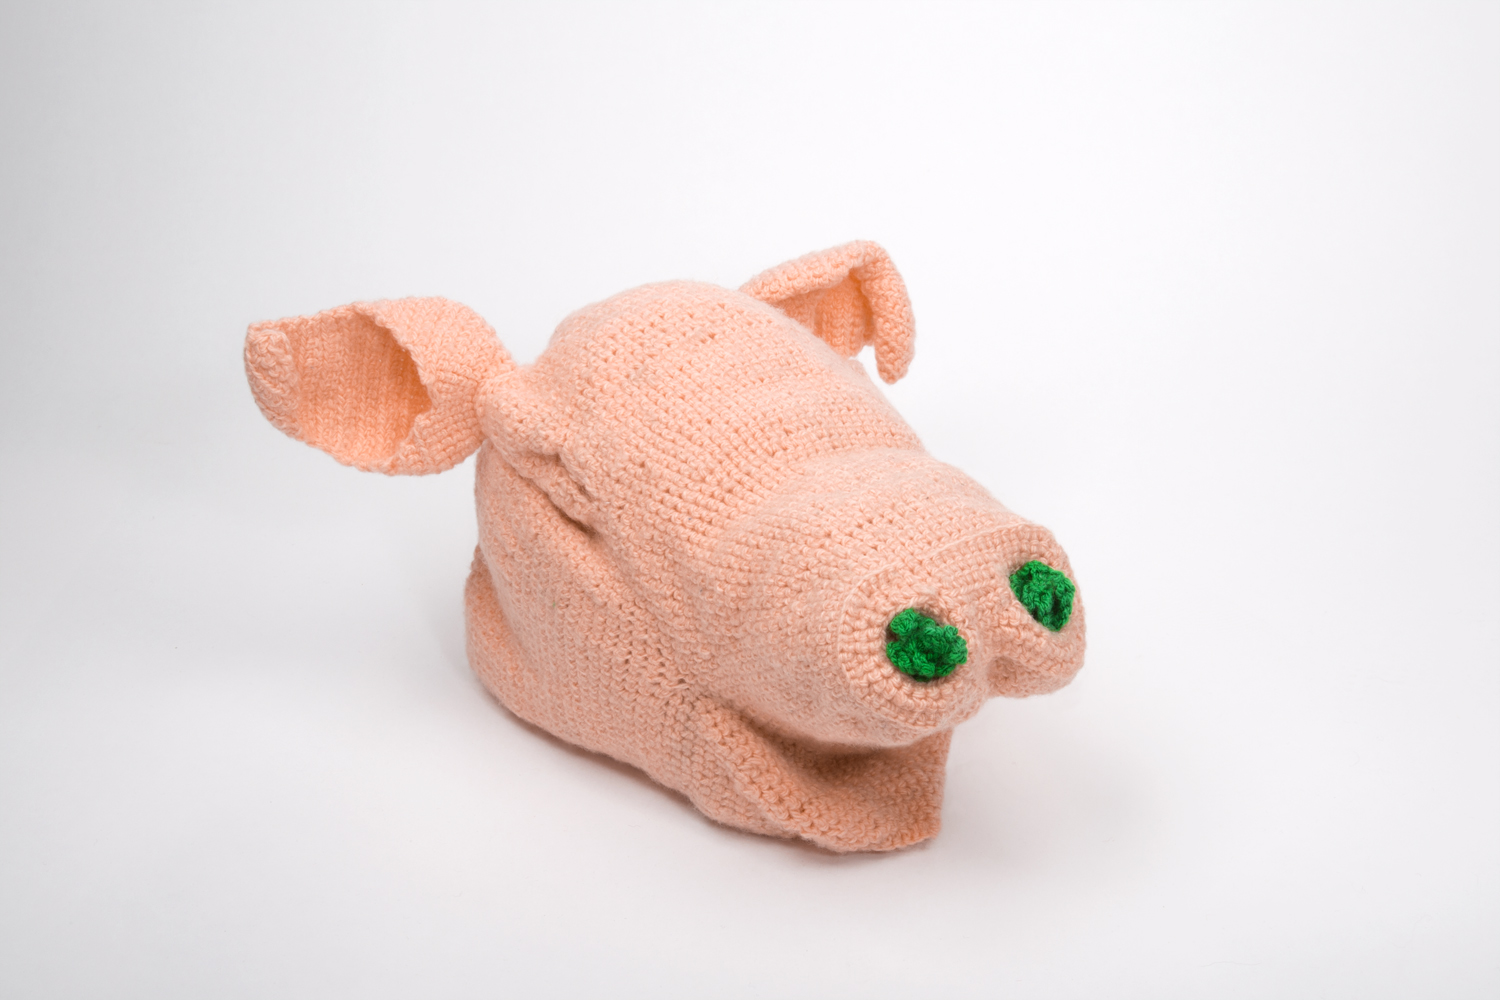 wool butchey-cochon-ClemenceJoly